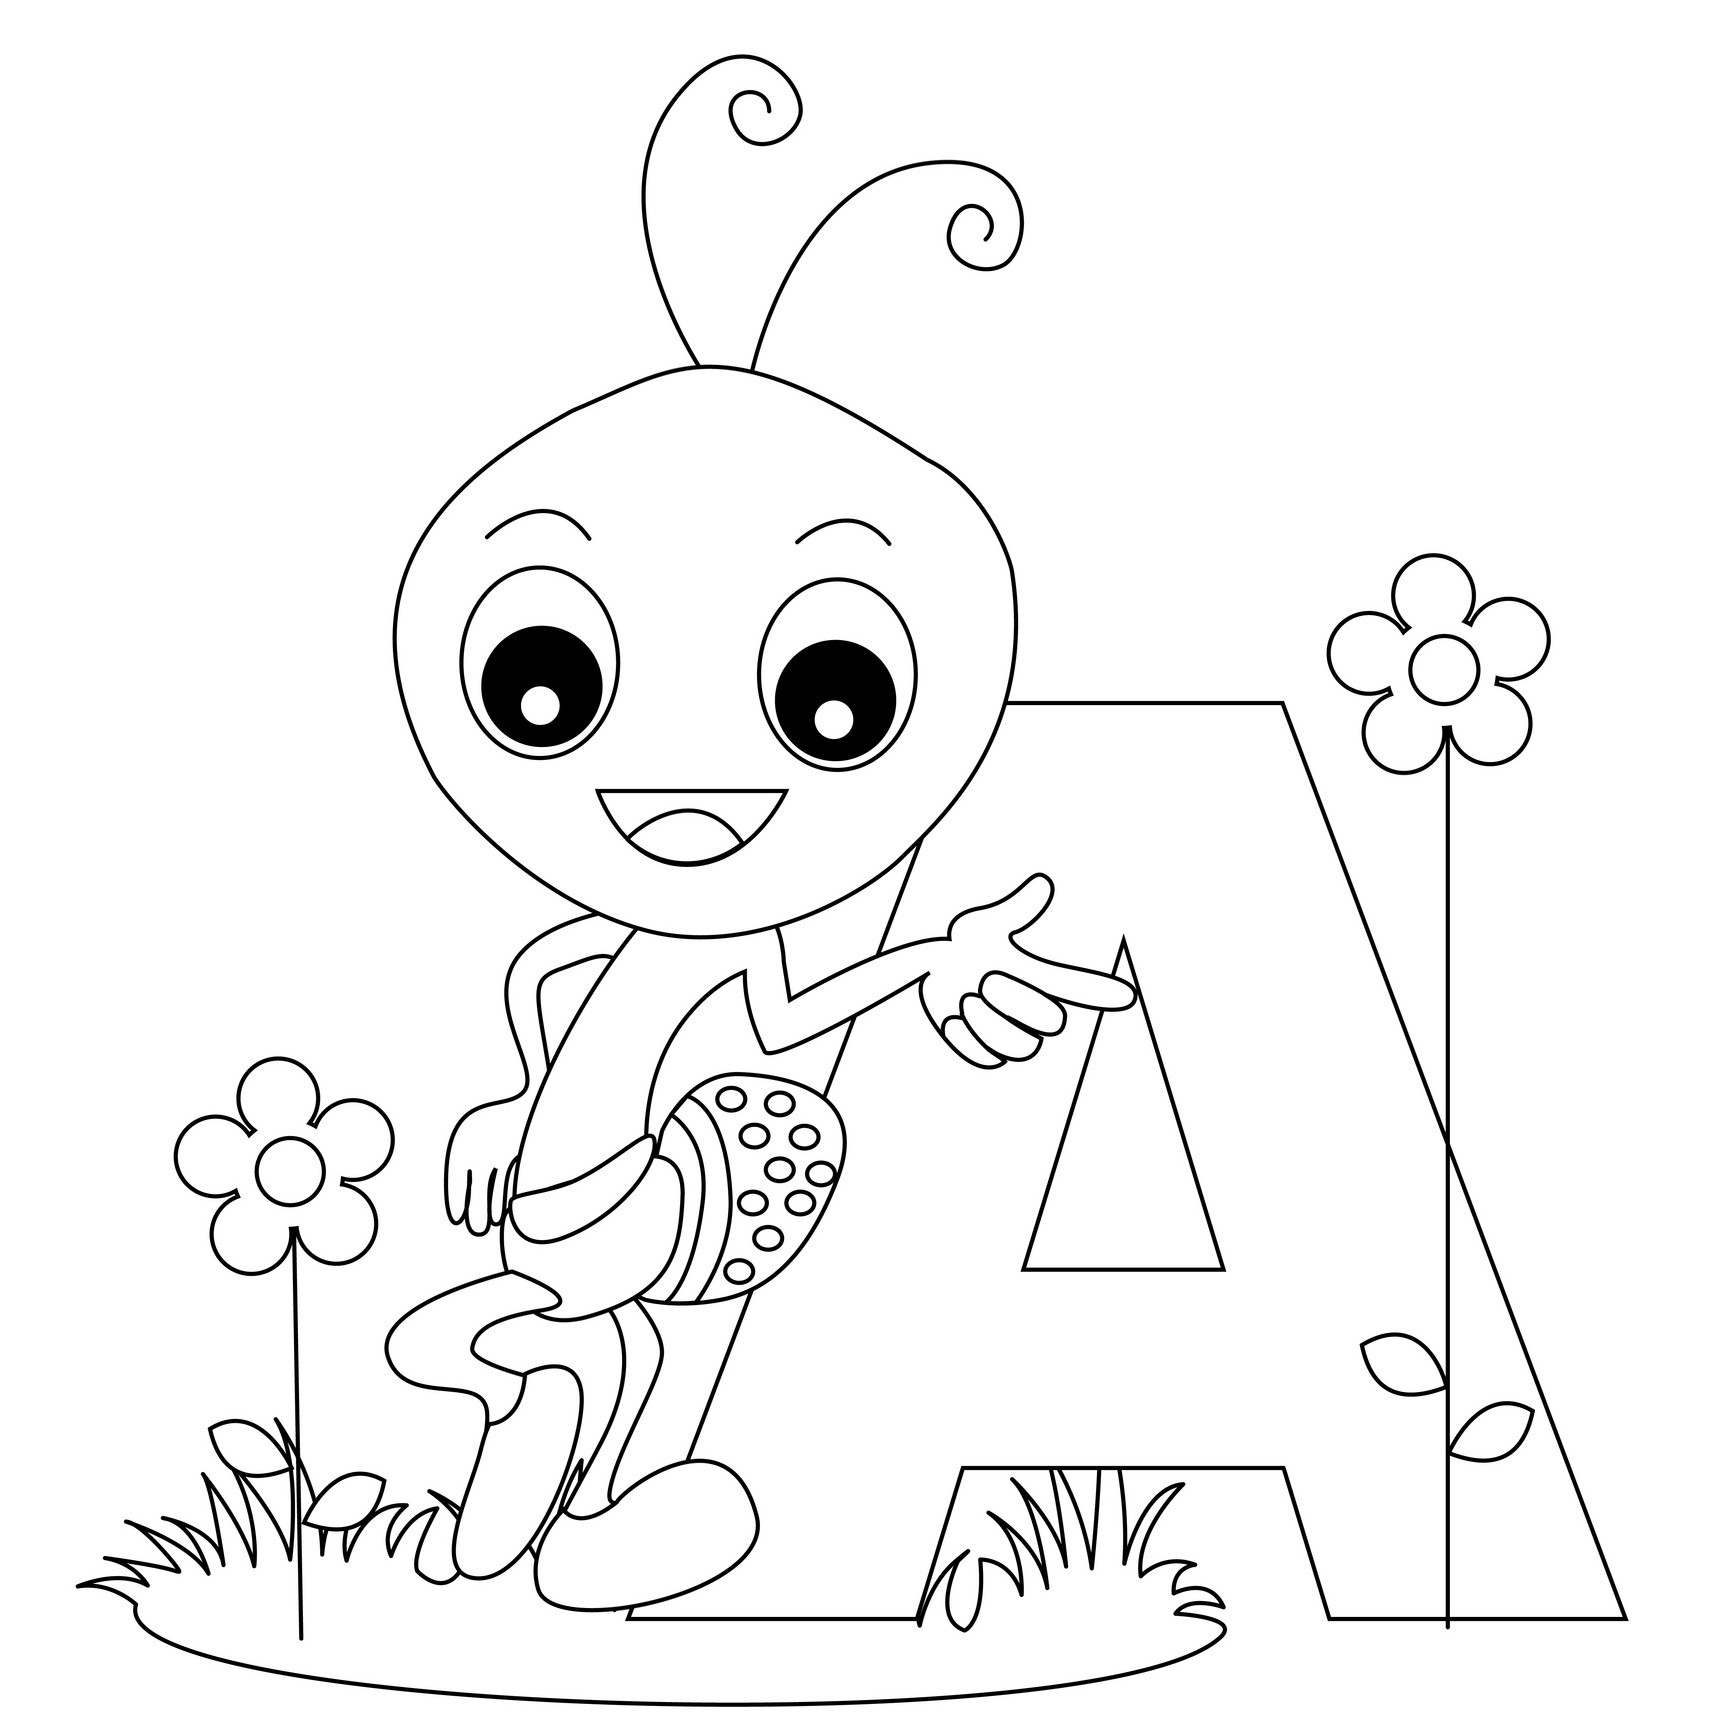 alphabet coloring book printable free printable alphabet coloring pages for kids best coloring printable book alphabet